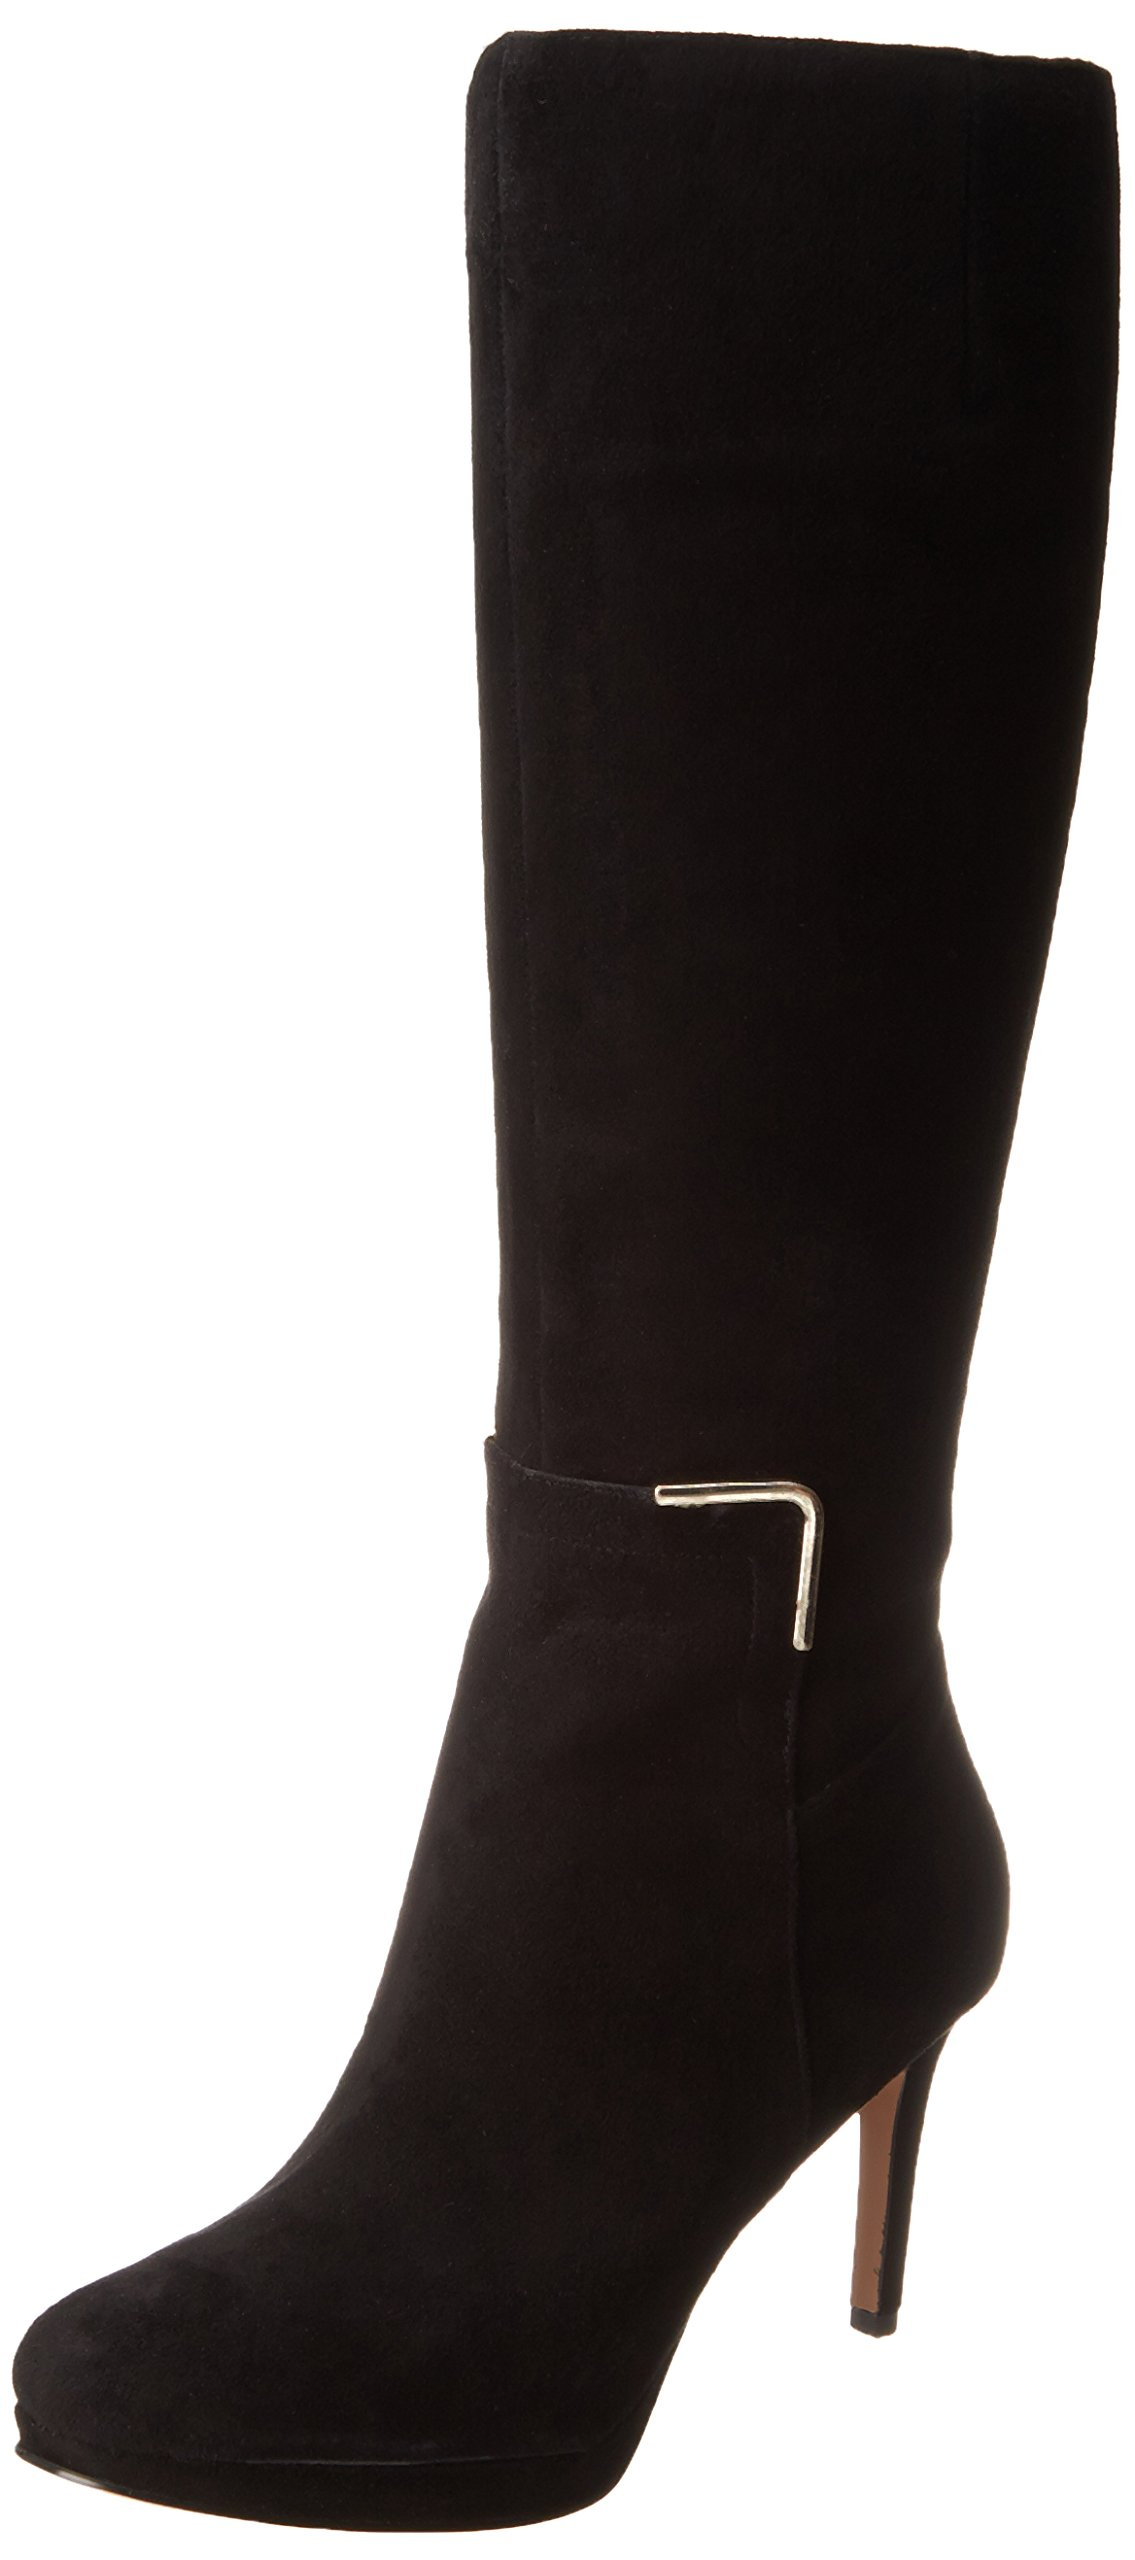 Women's Evah Suede Knee-High Boot image